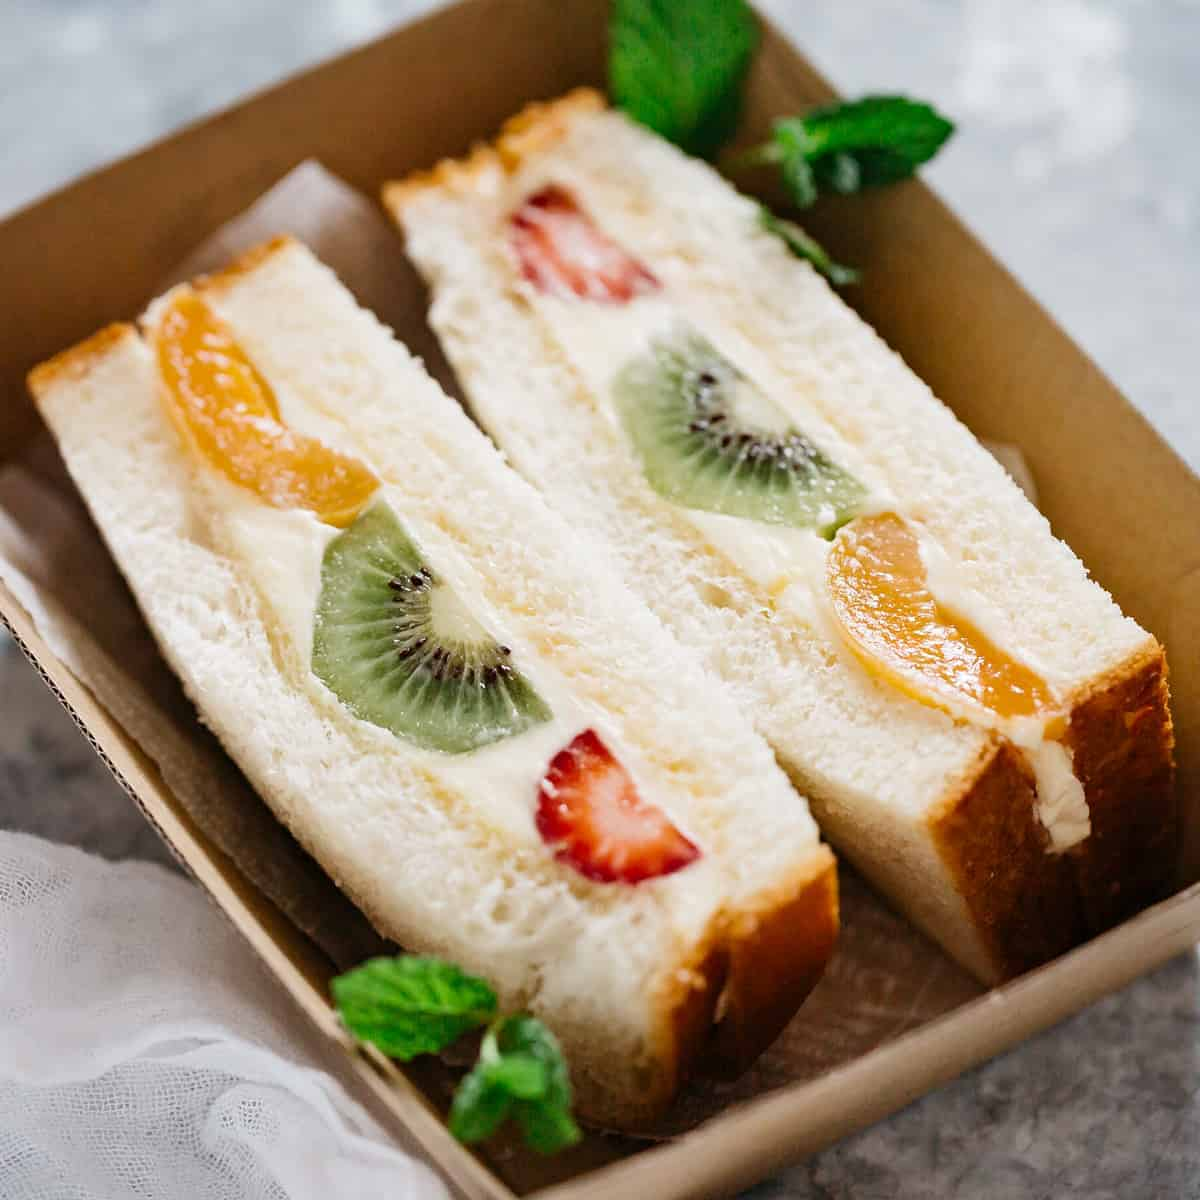 2 pieces of Fruit Sandwich in a takeaway cardboard container